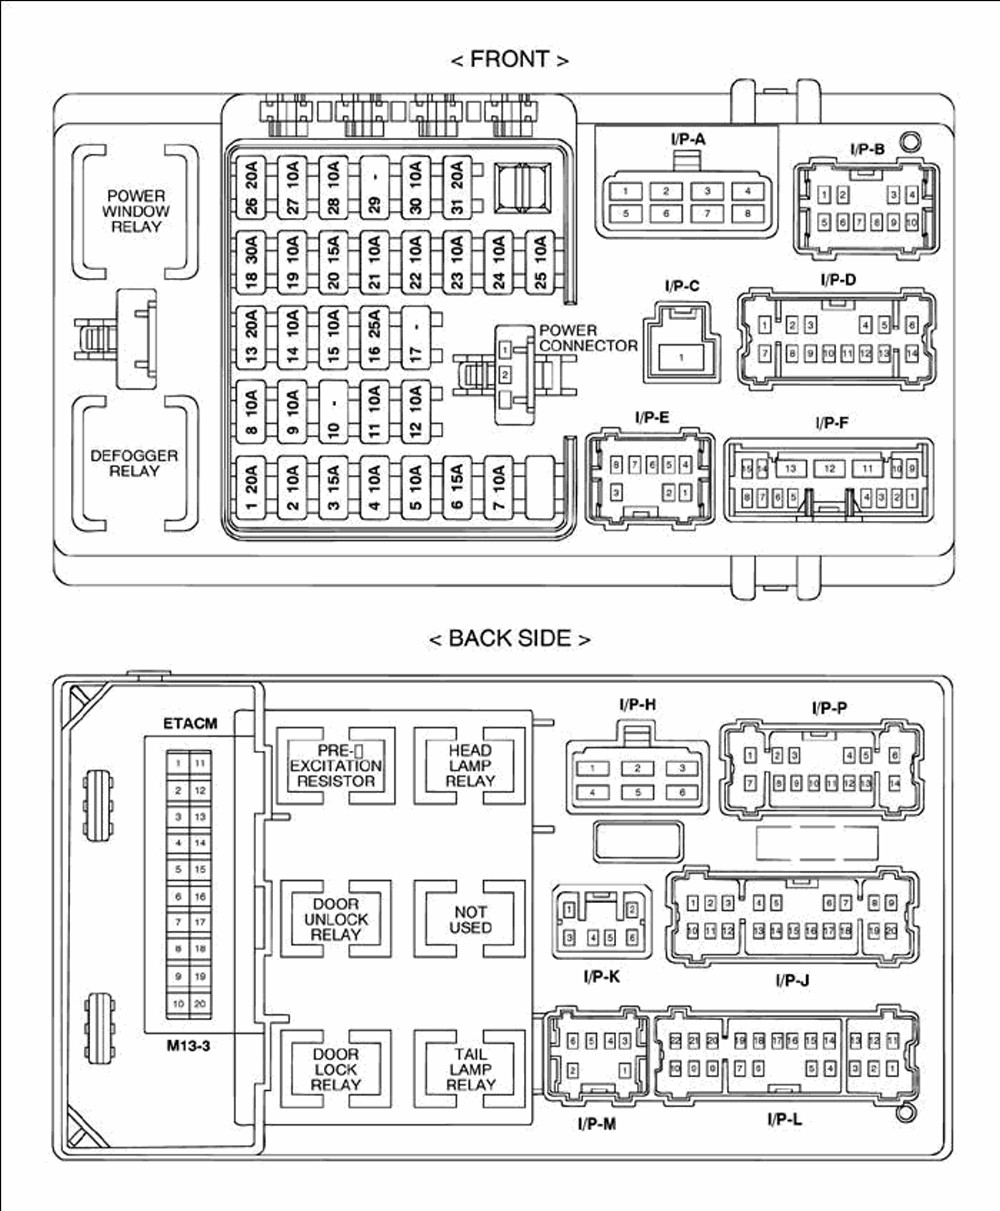 2006 ford f150 fuse block diagram fuse box diagram for 2006 ford f 150 wiring diagram data  fuse box diagram for 2006 ford f 150